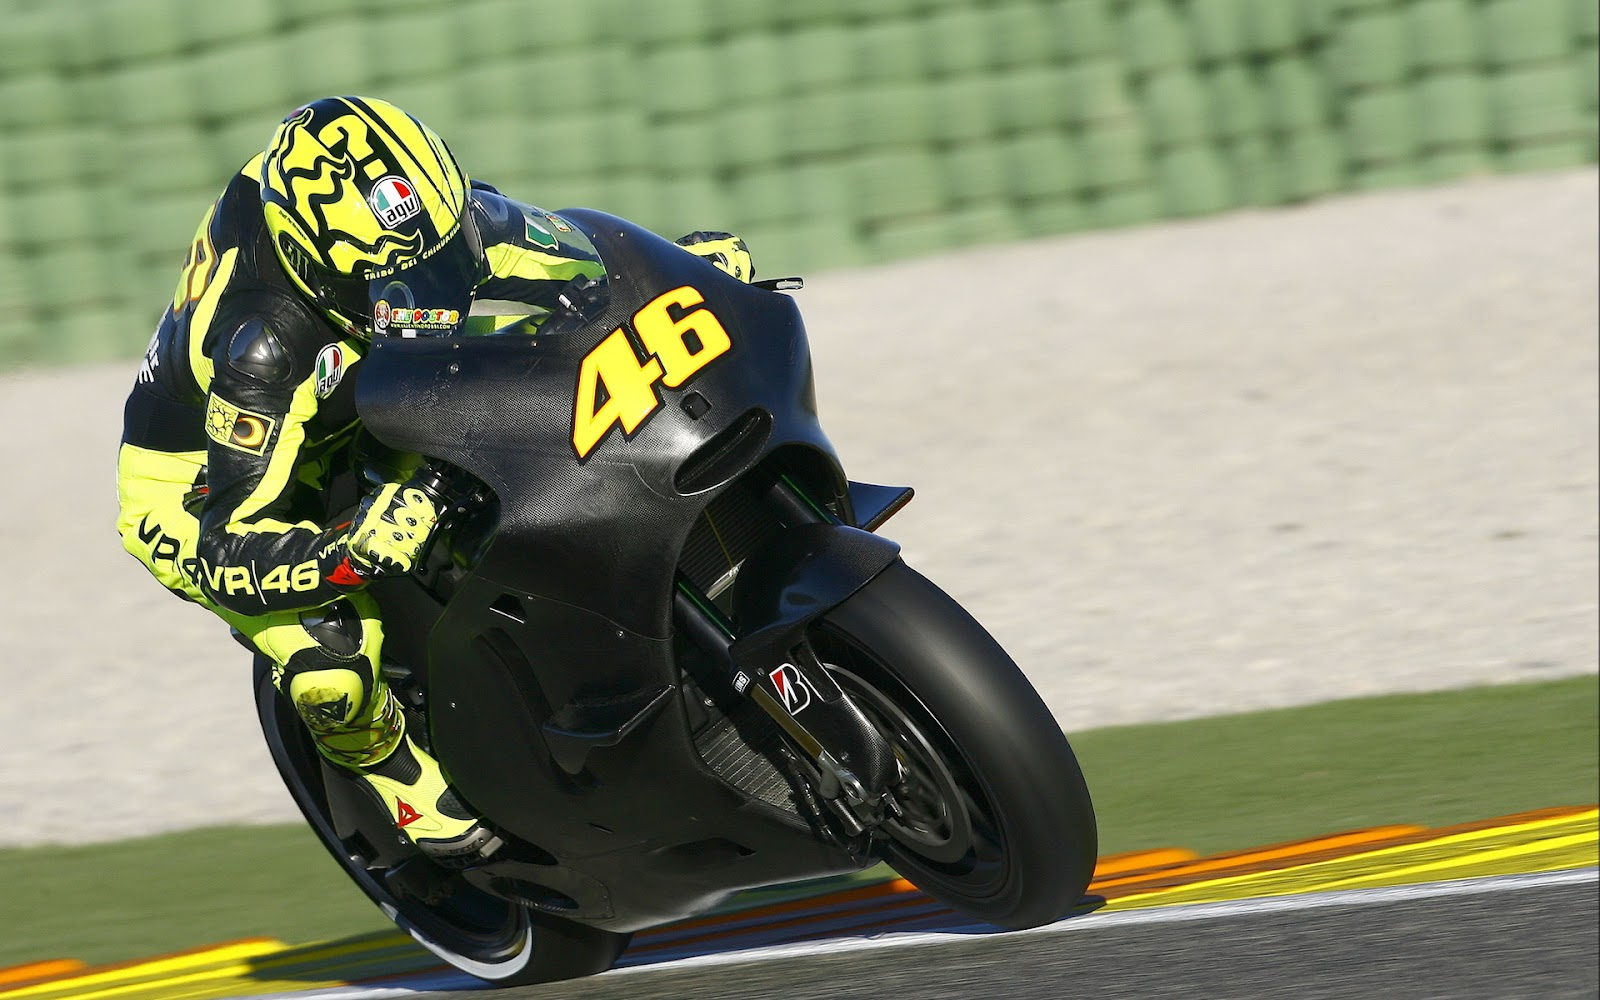 rossi 46 on black bike Valentino Rossi wallpapers in HD